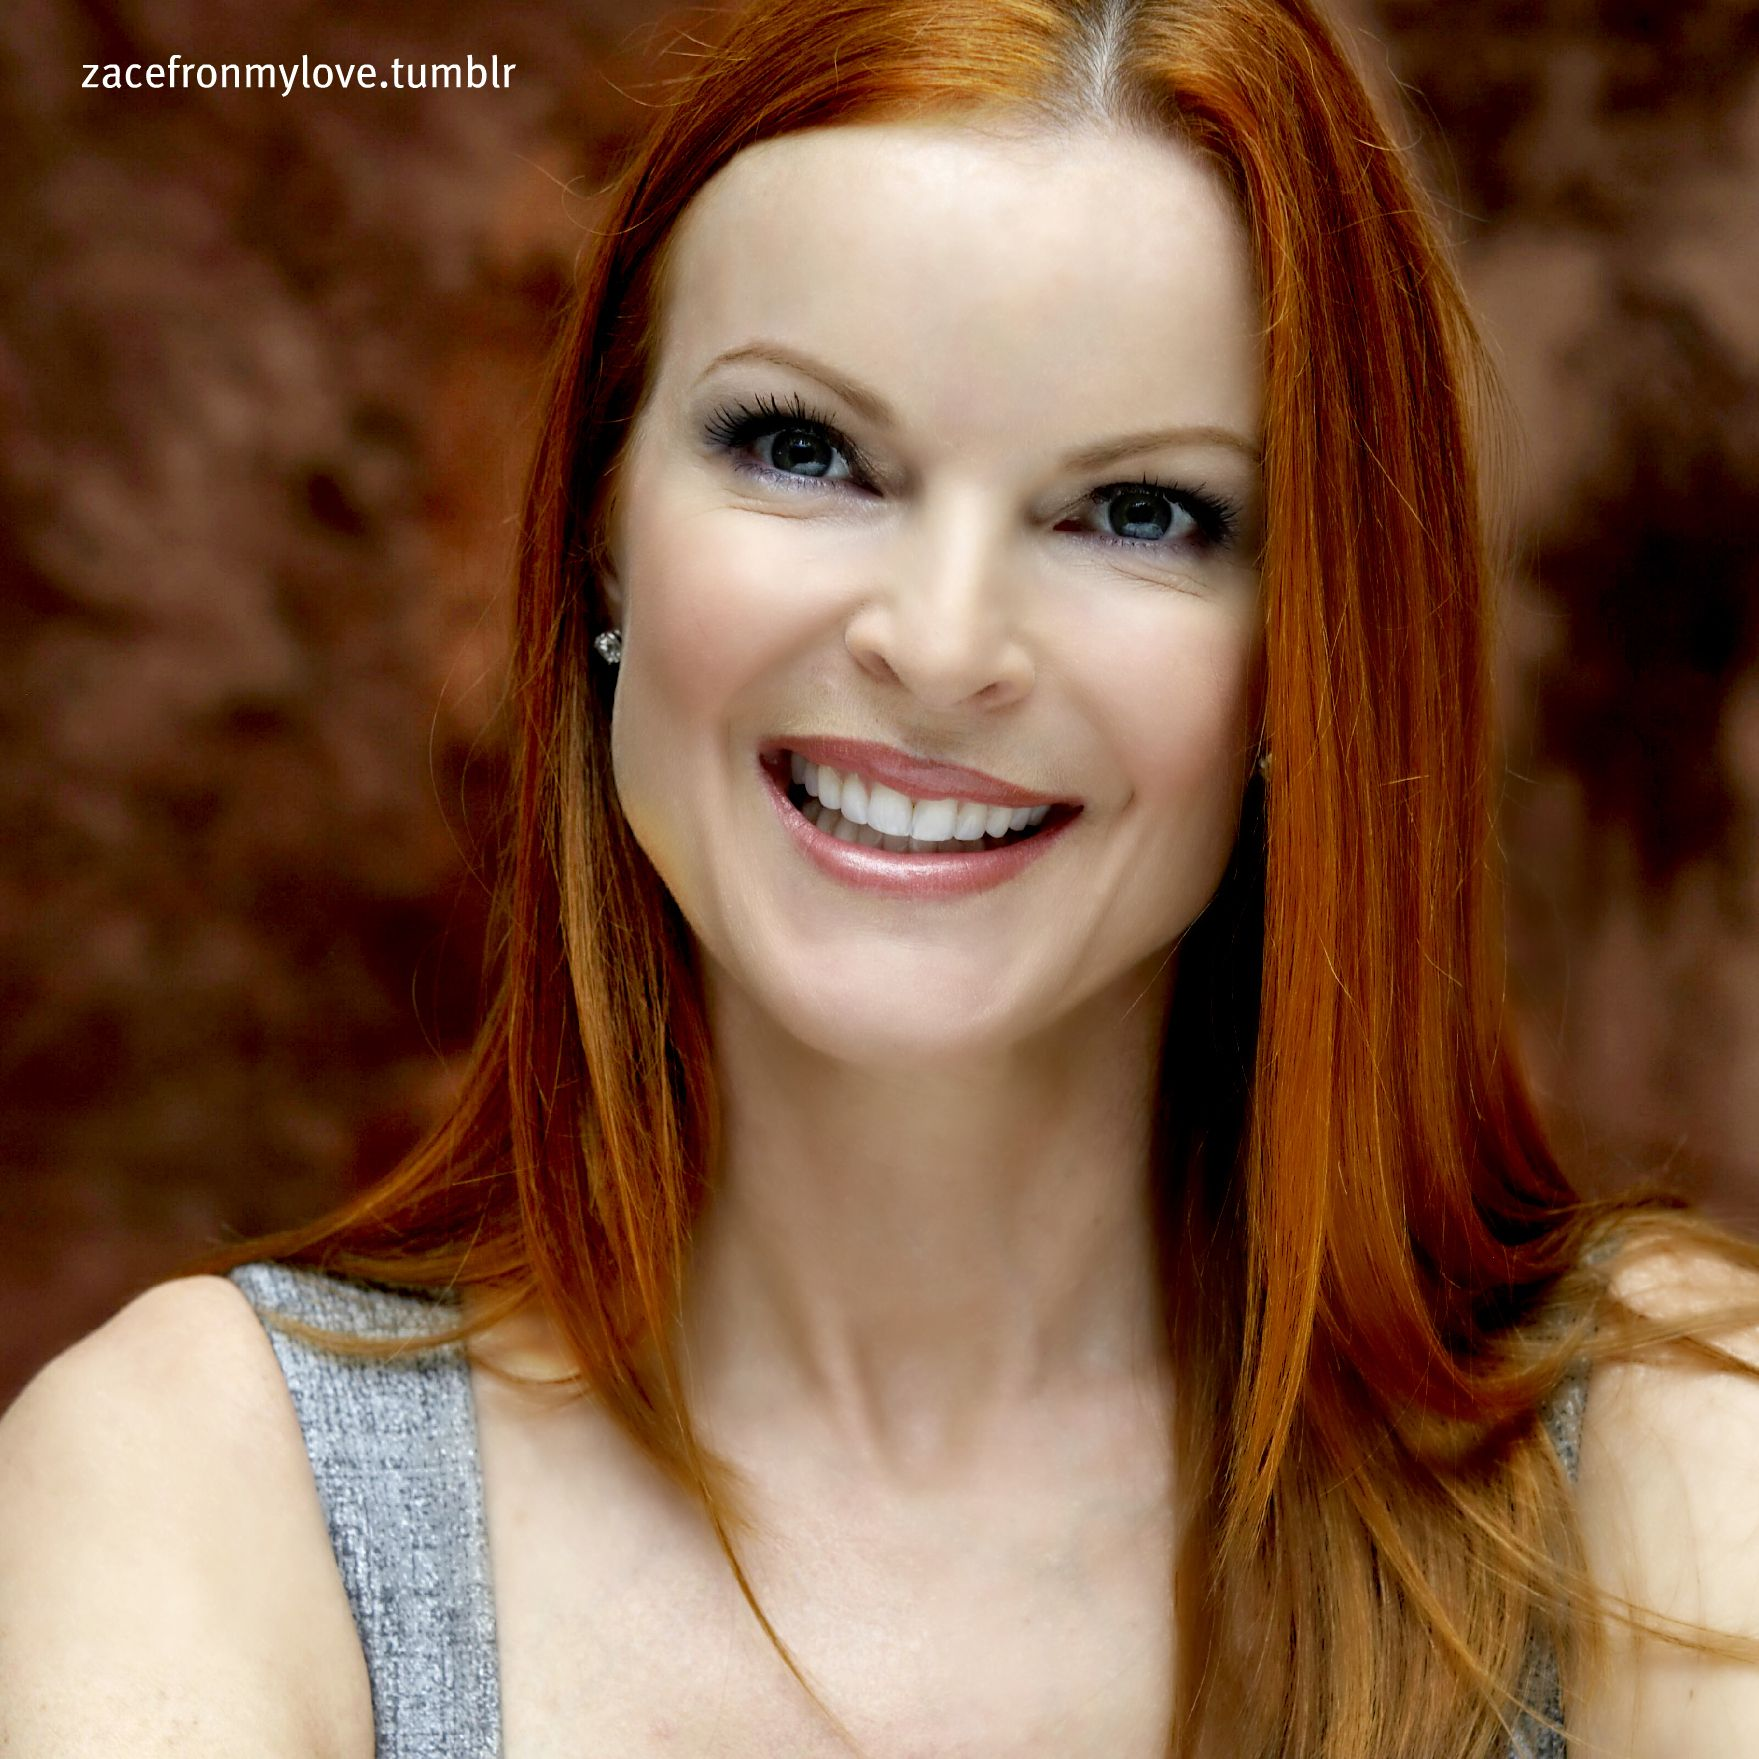 Is marcia cross a natural redhead